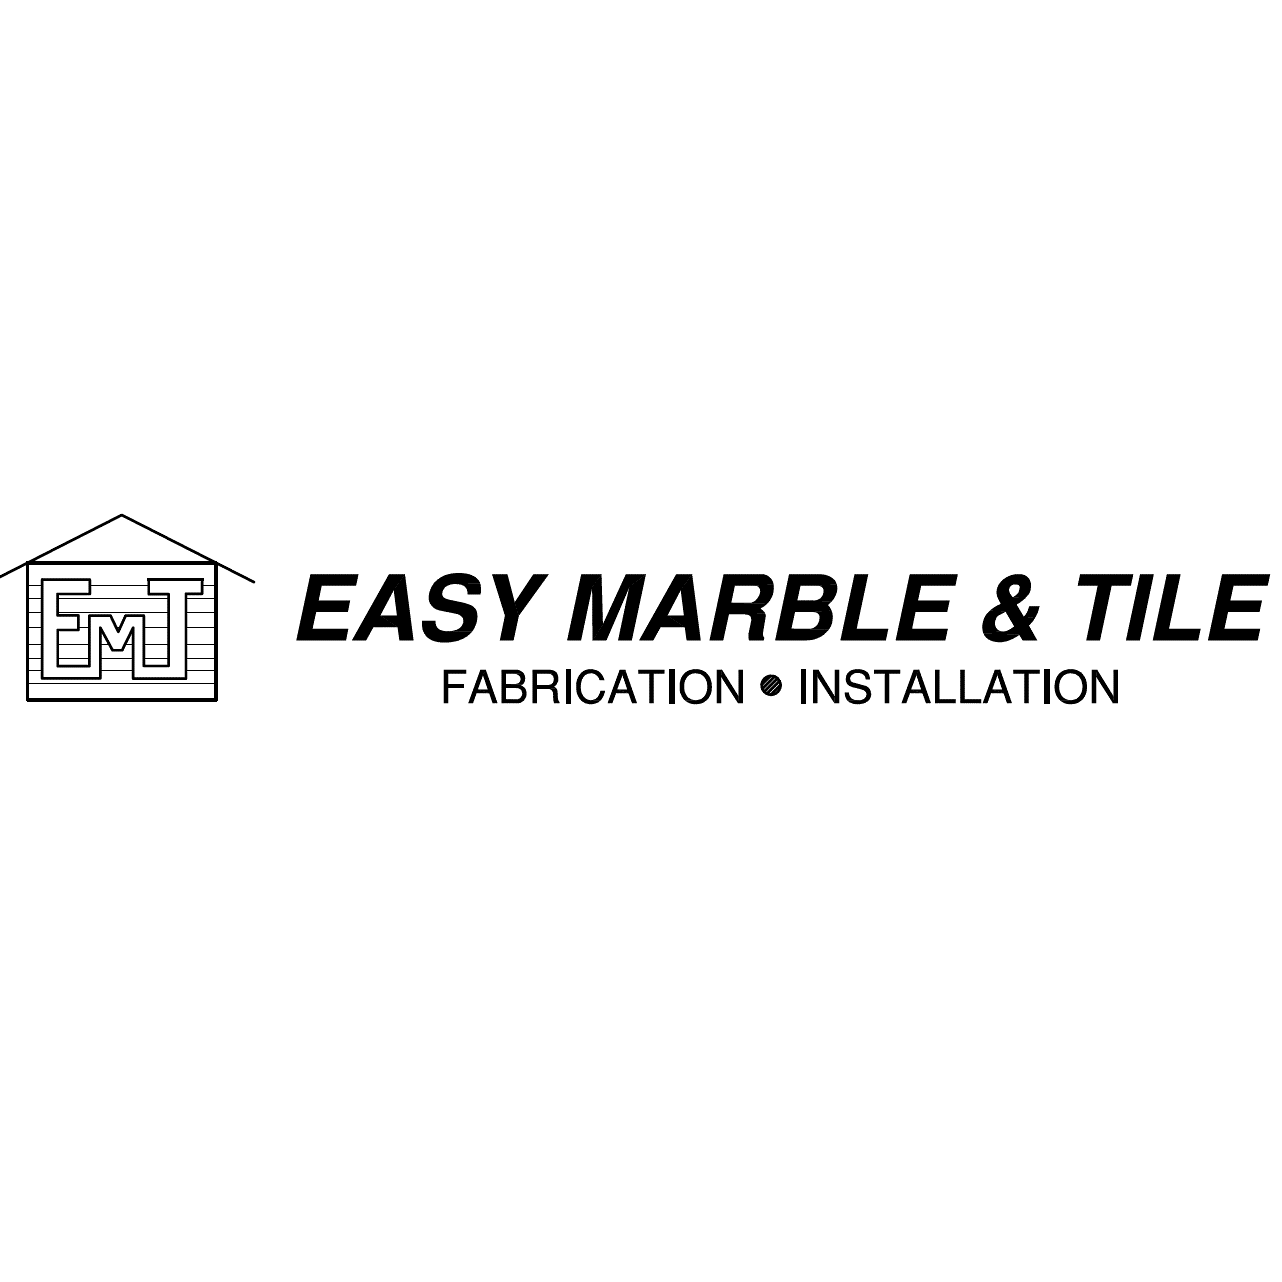 image of Easy Marble & Tile